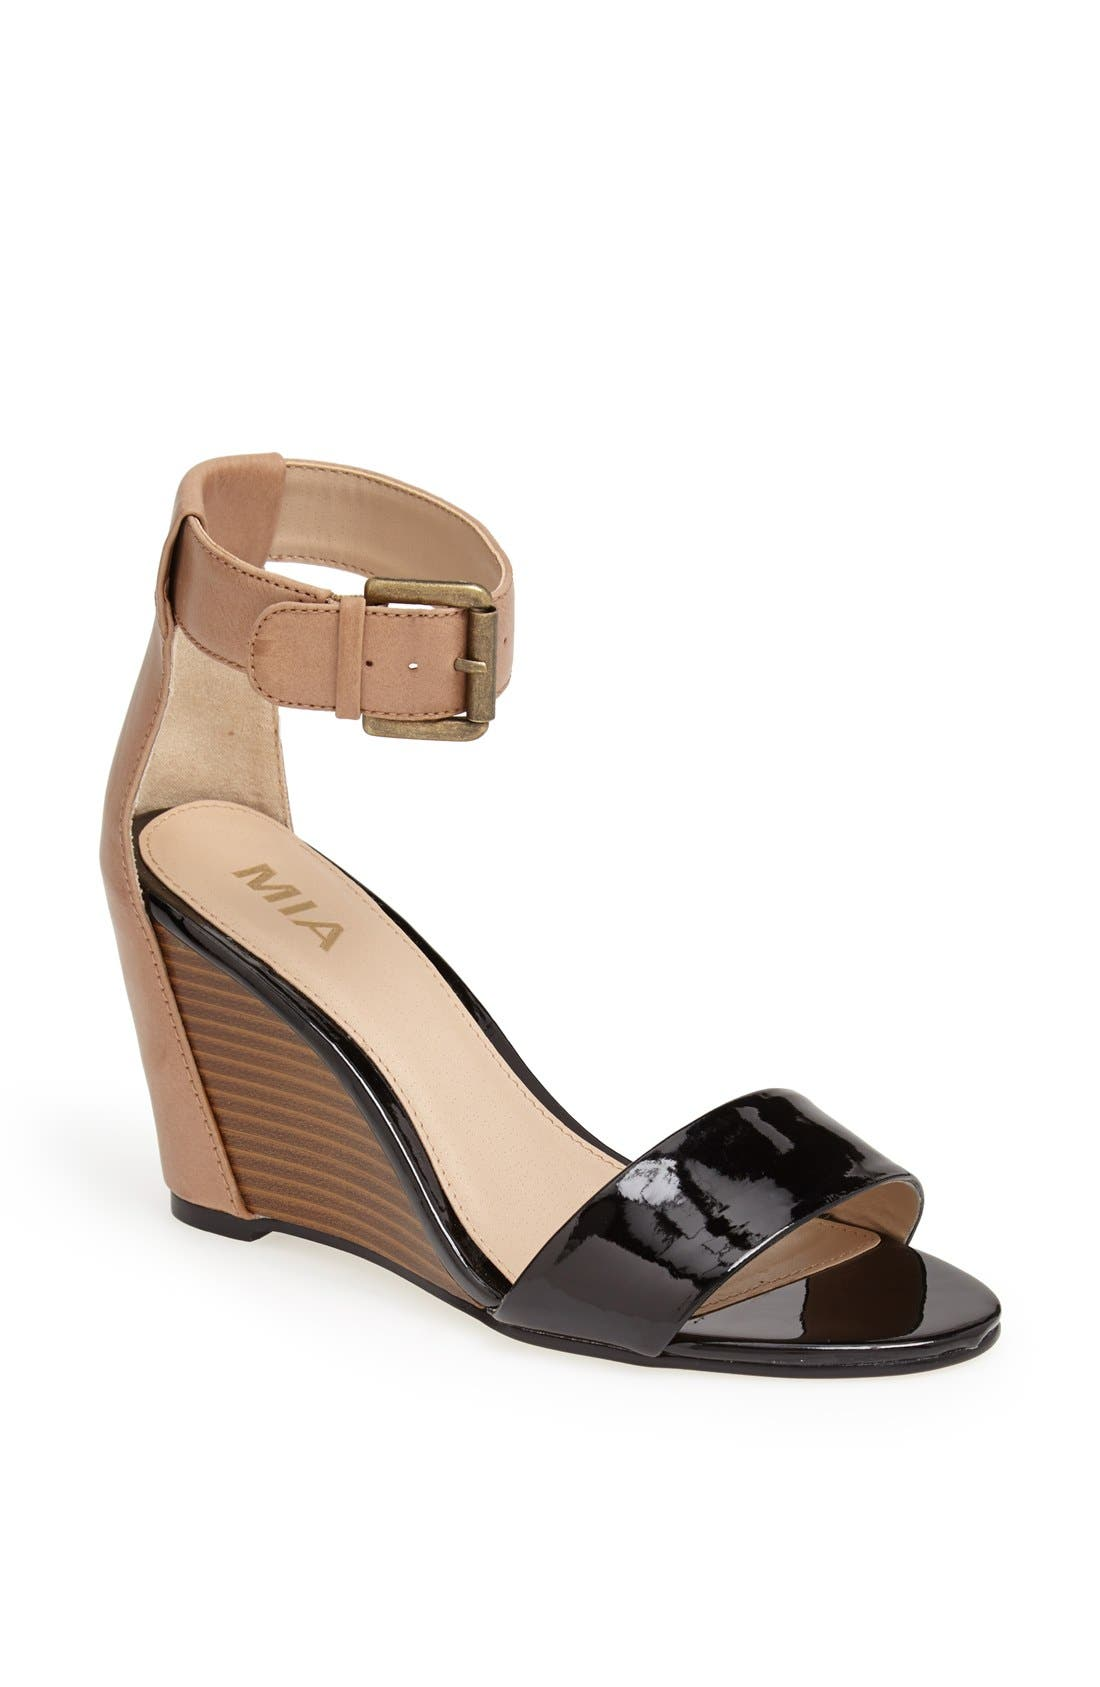 'Fiona' Colorblock Wedge Sandal, Main, color, 001